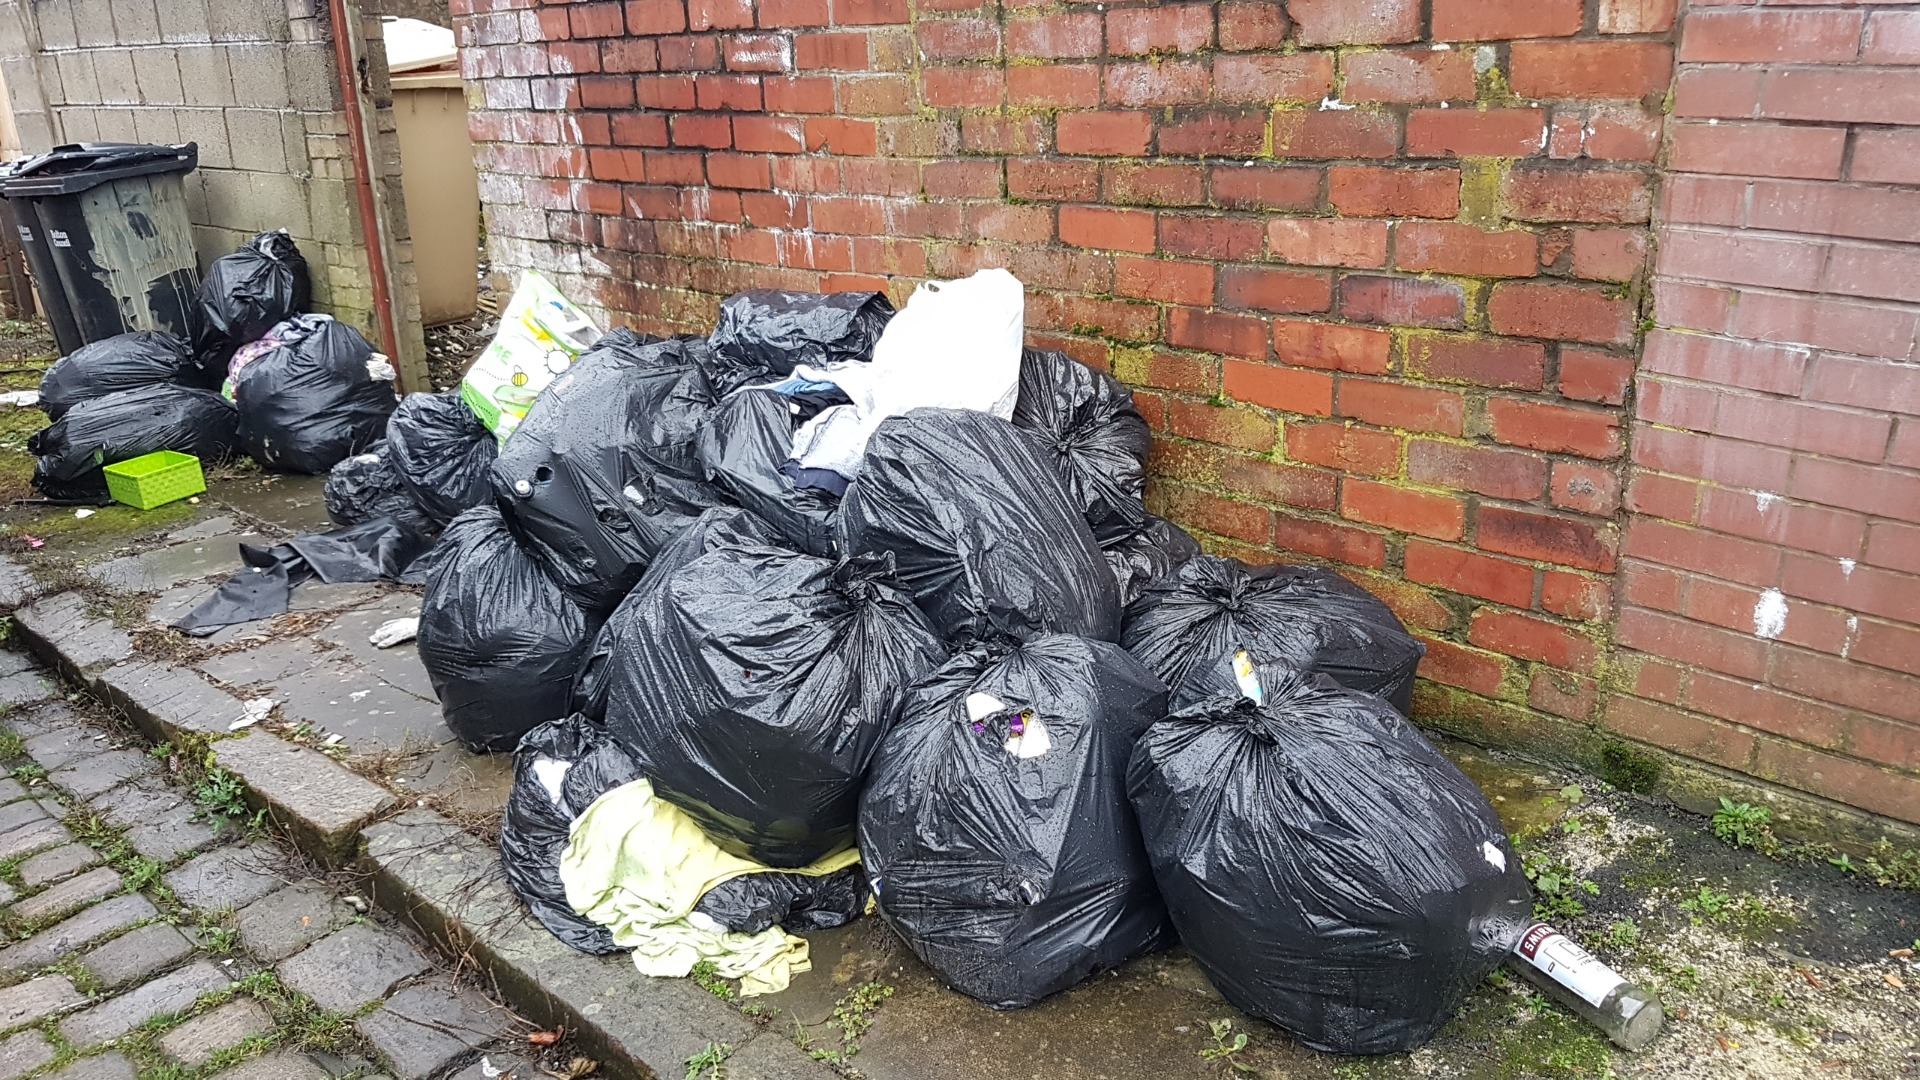 Toughest sentence yet as Bolton wages war on flytipping